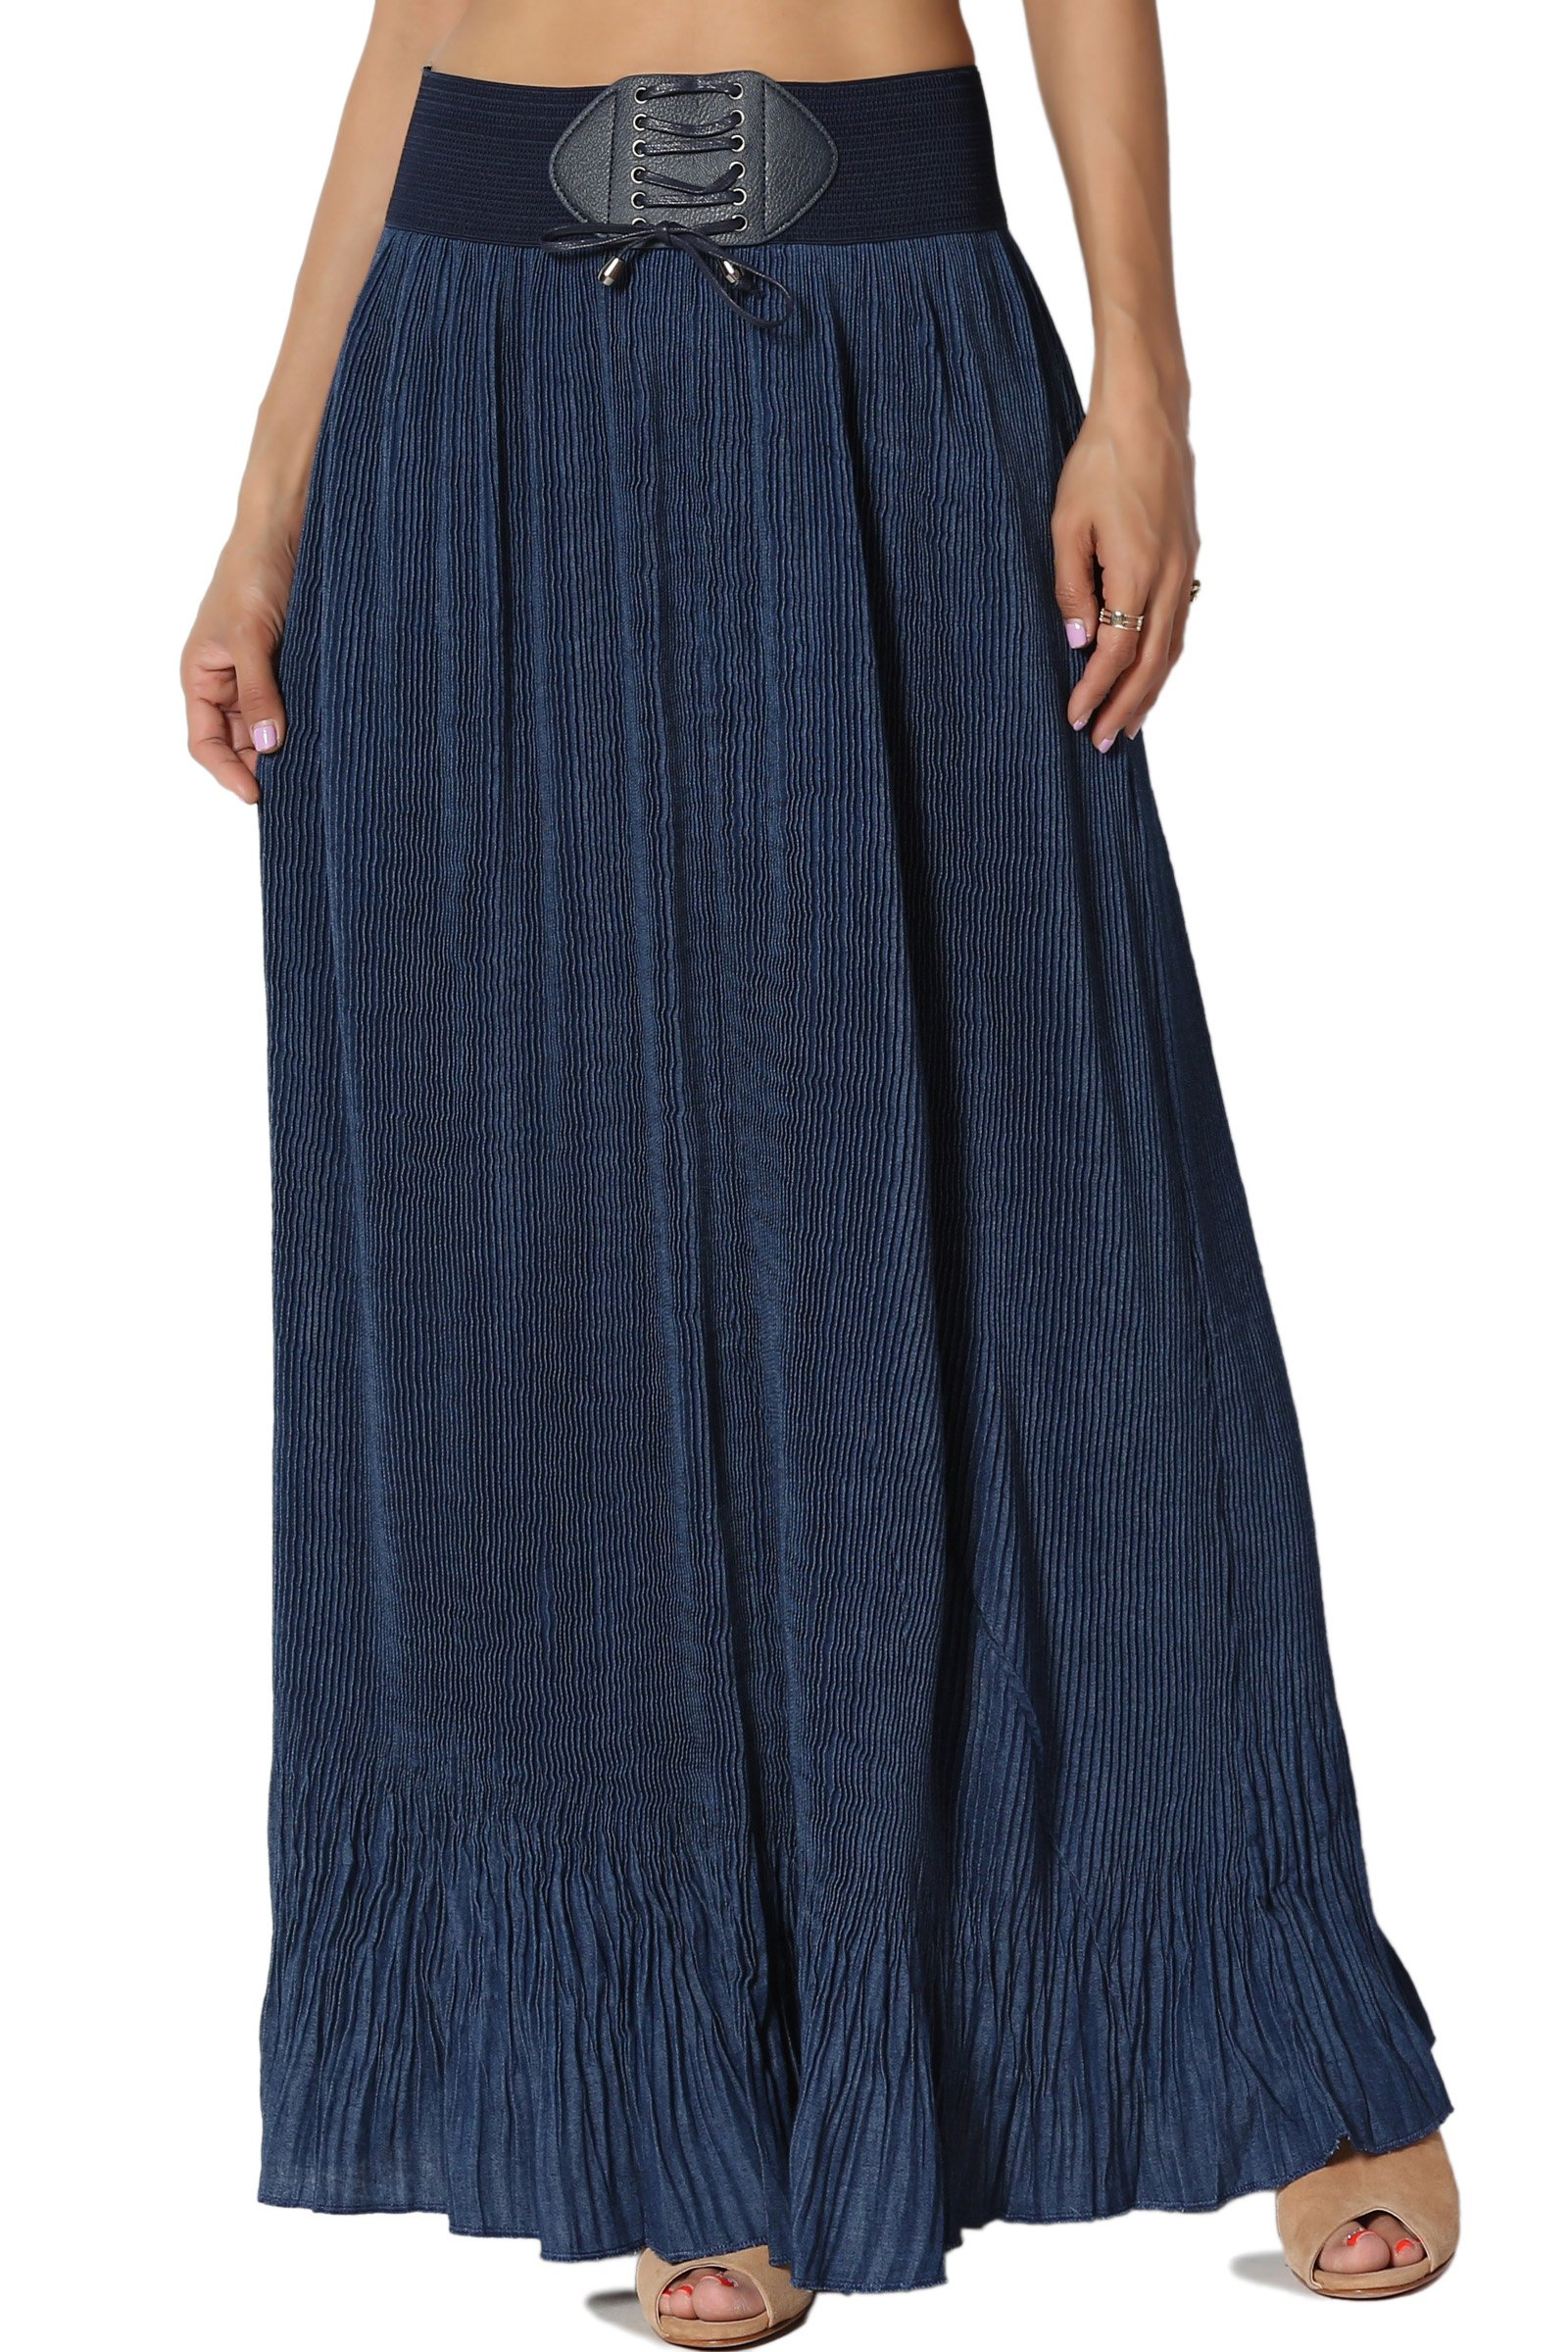 TheMogan Junior's Pleated Chambray Denim Elastic Belted Maxi Skirt Navy ONE Size